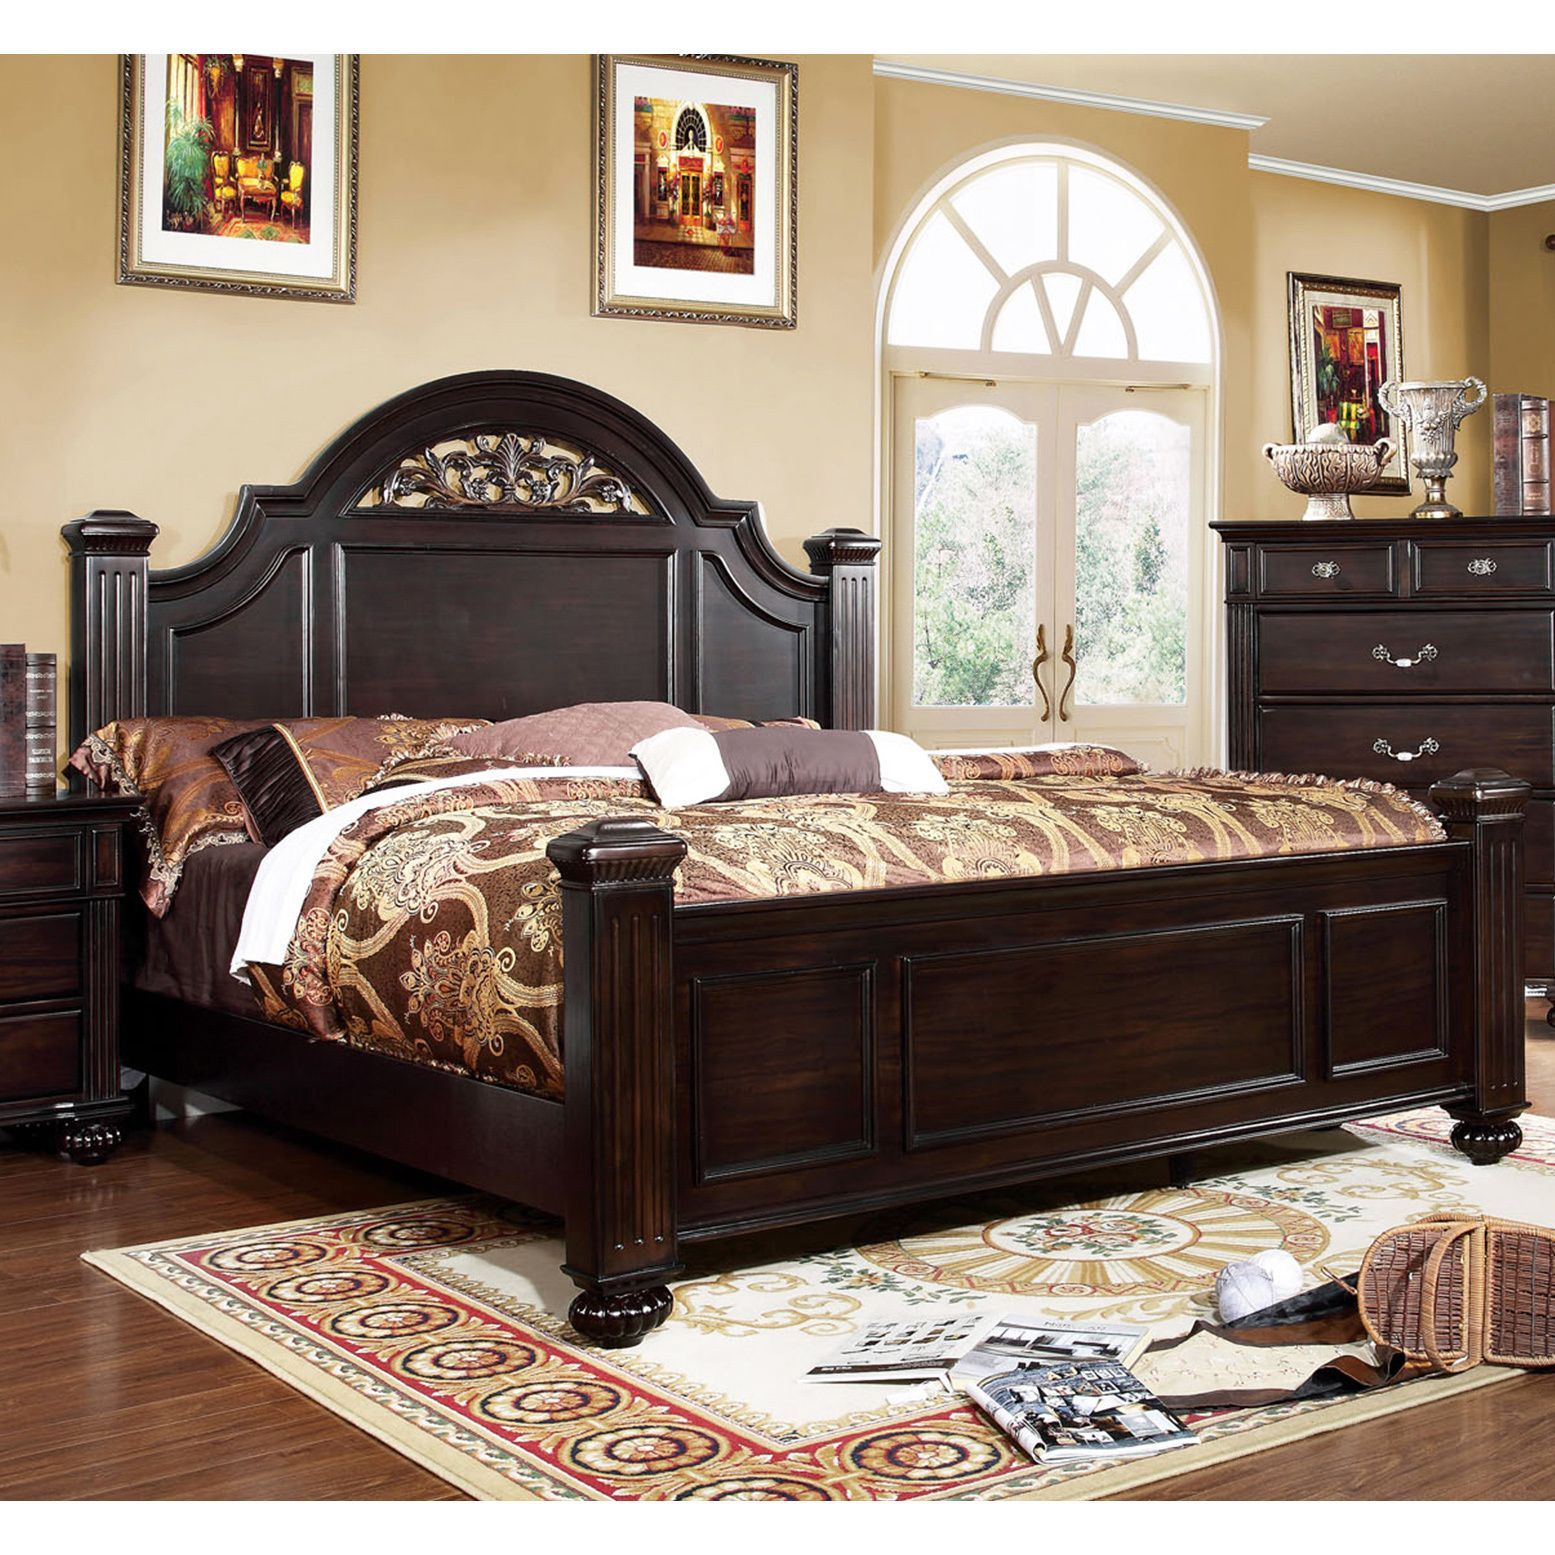 Furniture Of America Grande Dark Walnut Oval Floral Platform Bed